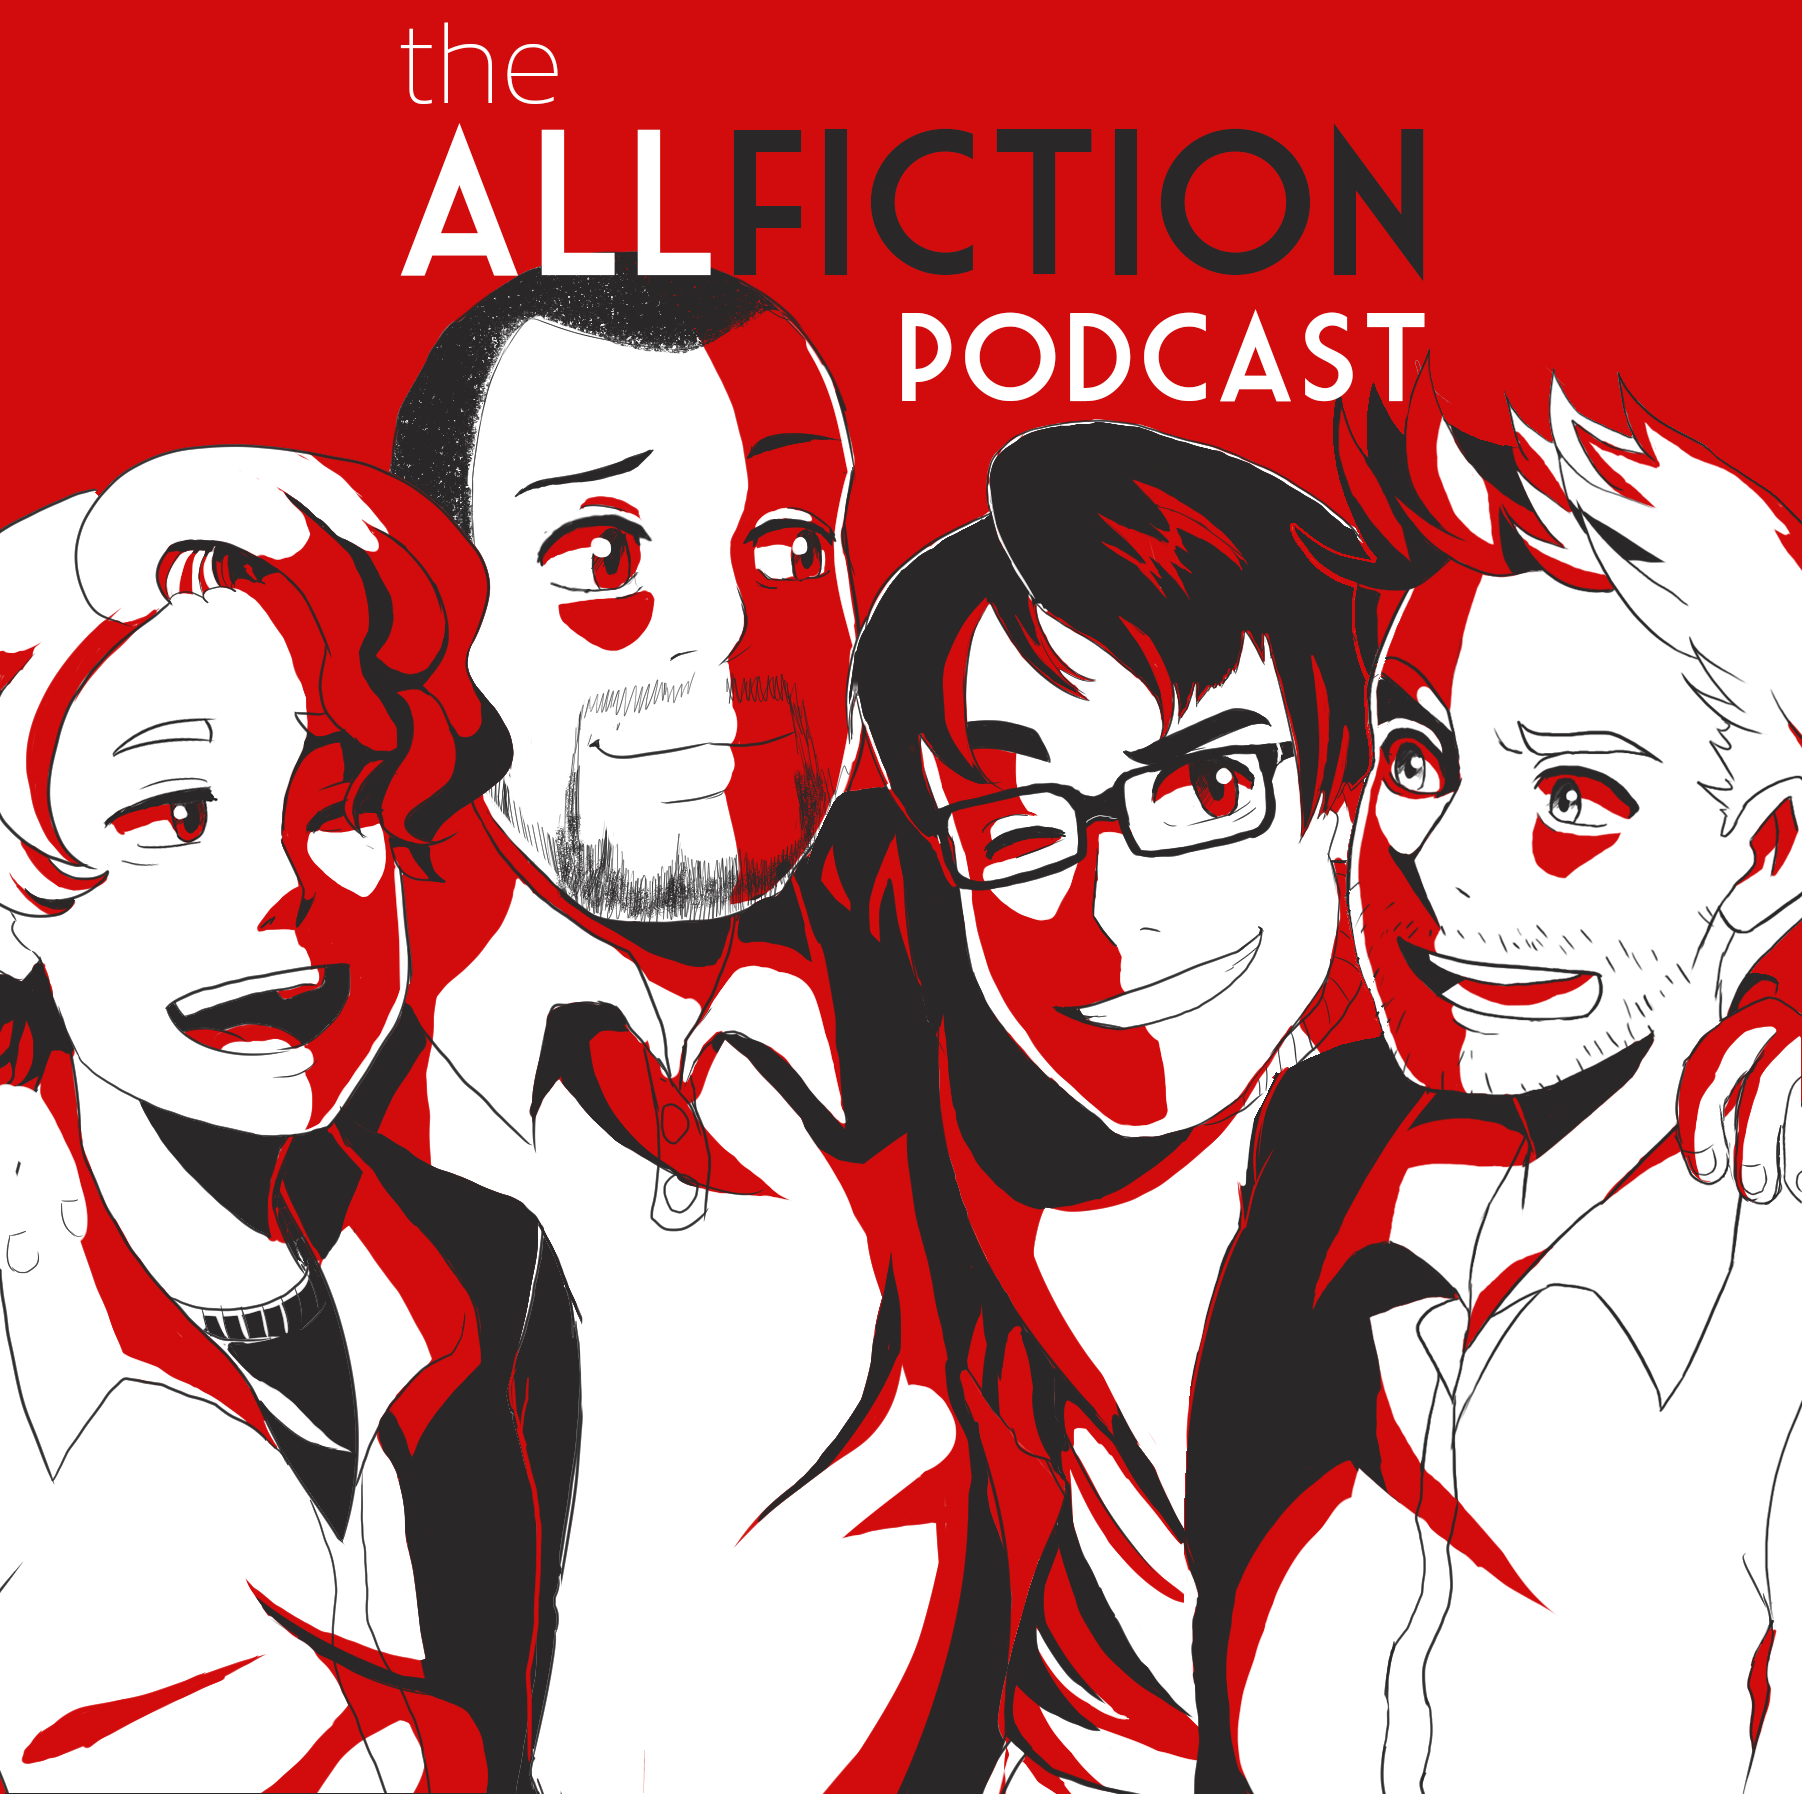 Artwork for The AllFiction Podcast - Episode 42 - Rockin' New Year